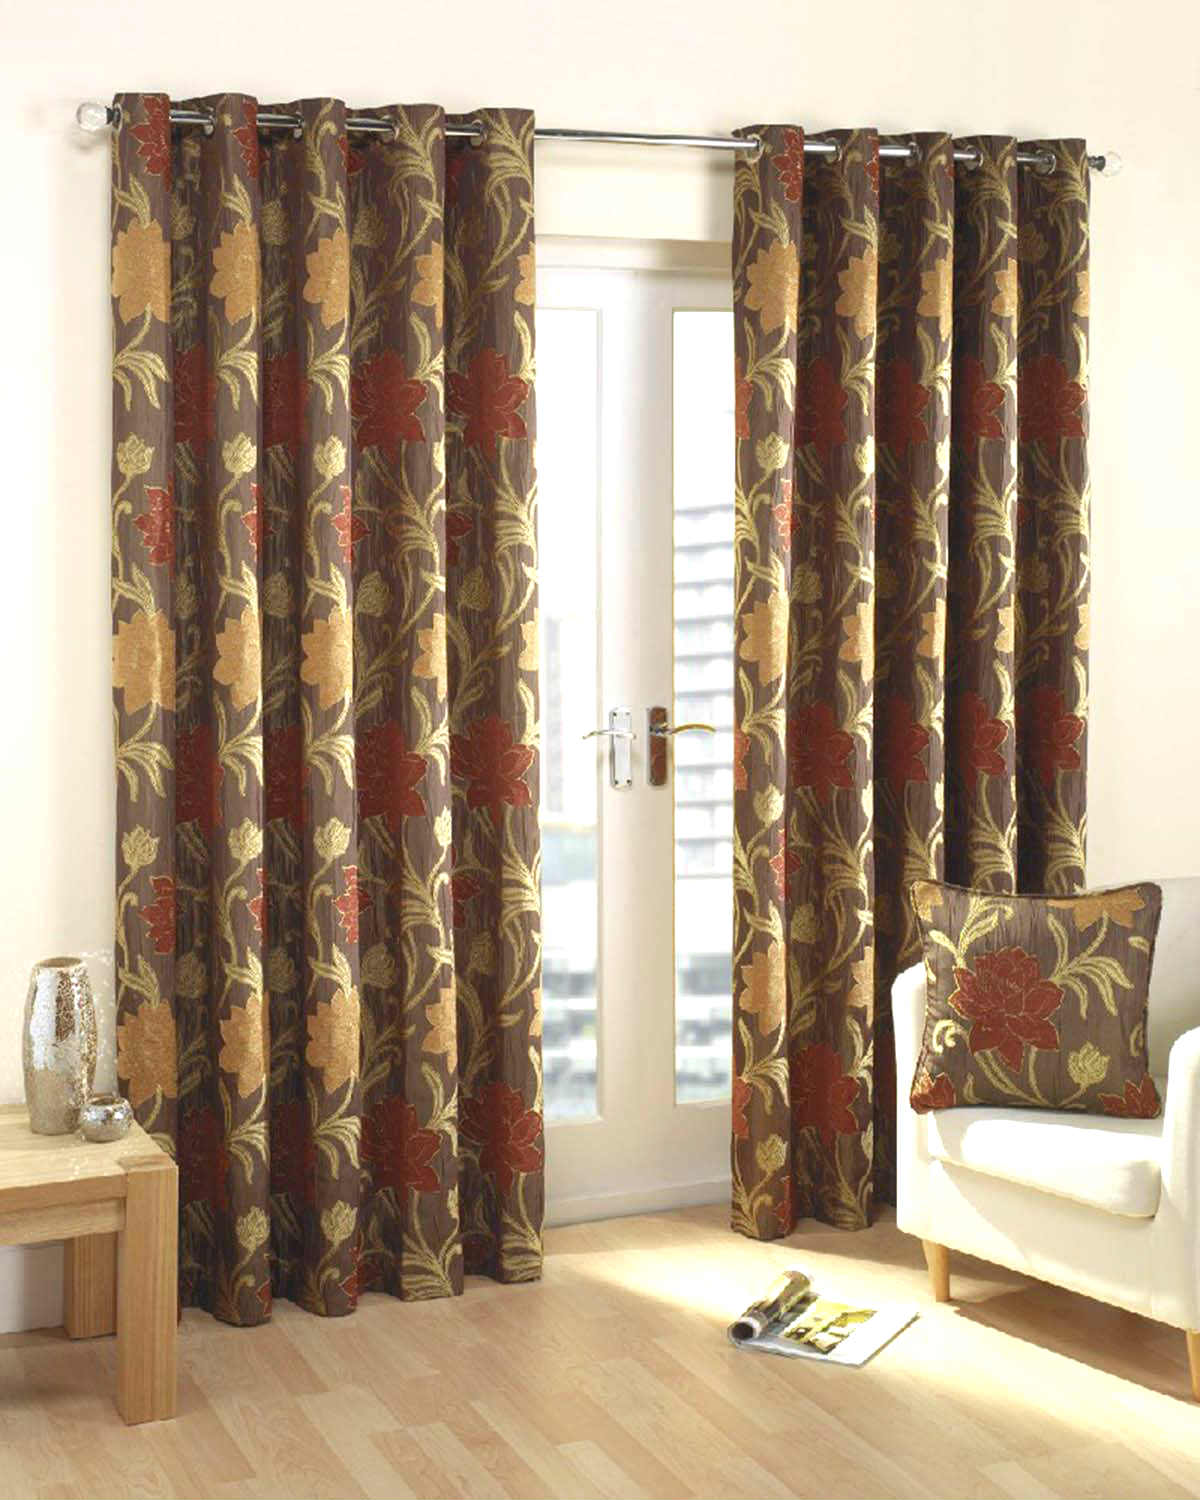 Living Room Curtains Uk Part - 26: Verdi Ready Made Lined Eyelet Curtains